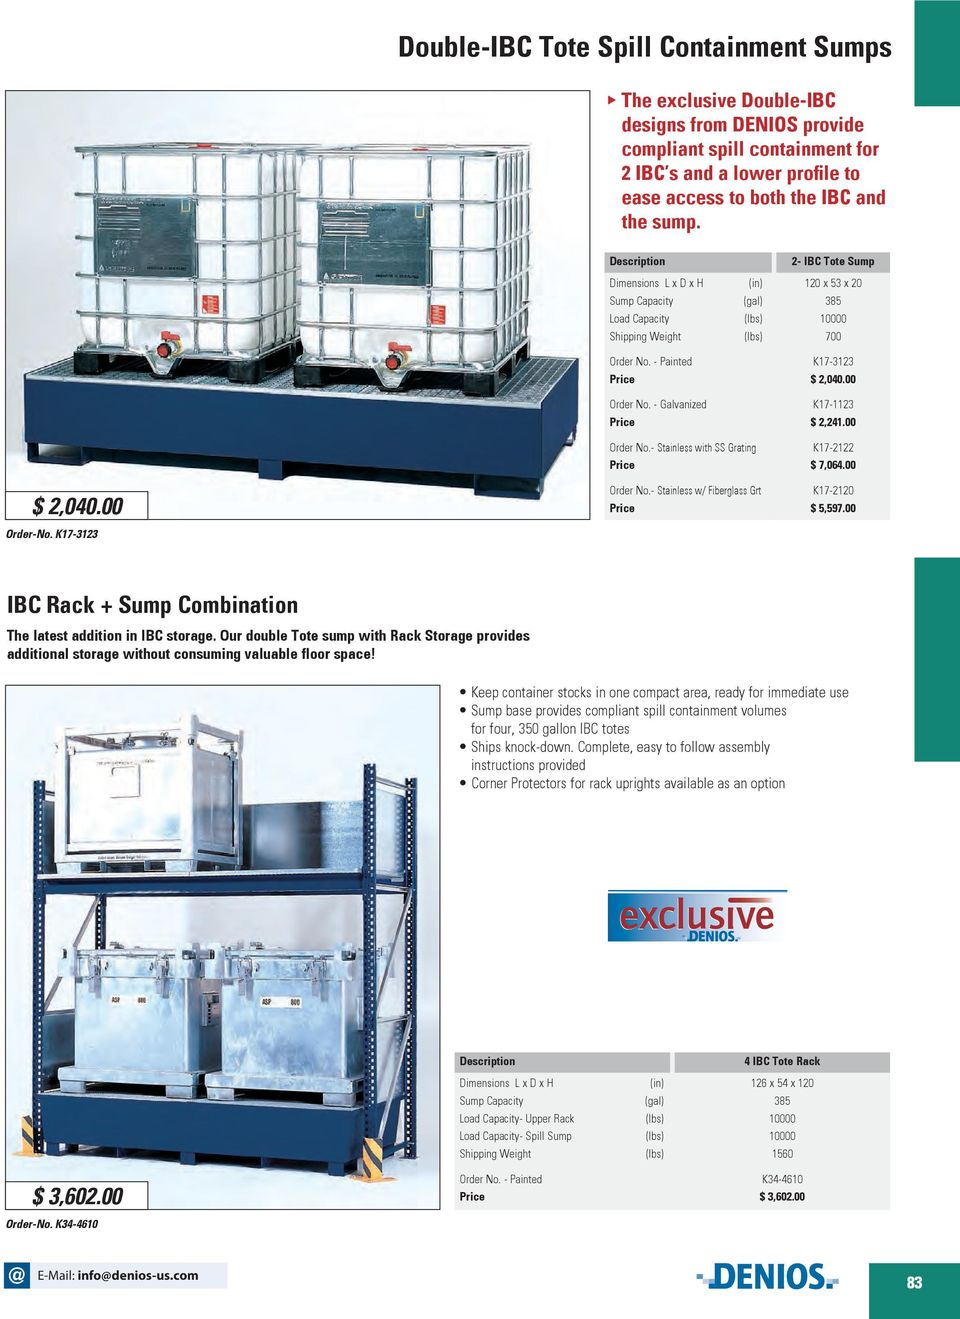 K17-3123 - Stainless with SS Grating - Stainless w/ Fiberglass Grt K17-2122 $ 7,064.00 K17-2120 $ 5,597.00 IBC Rack + Sump Combination The latest addition in IBC storage.